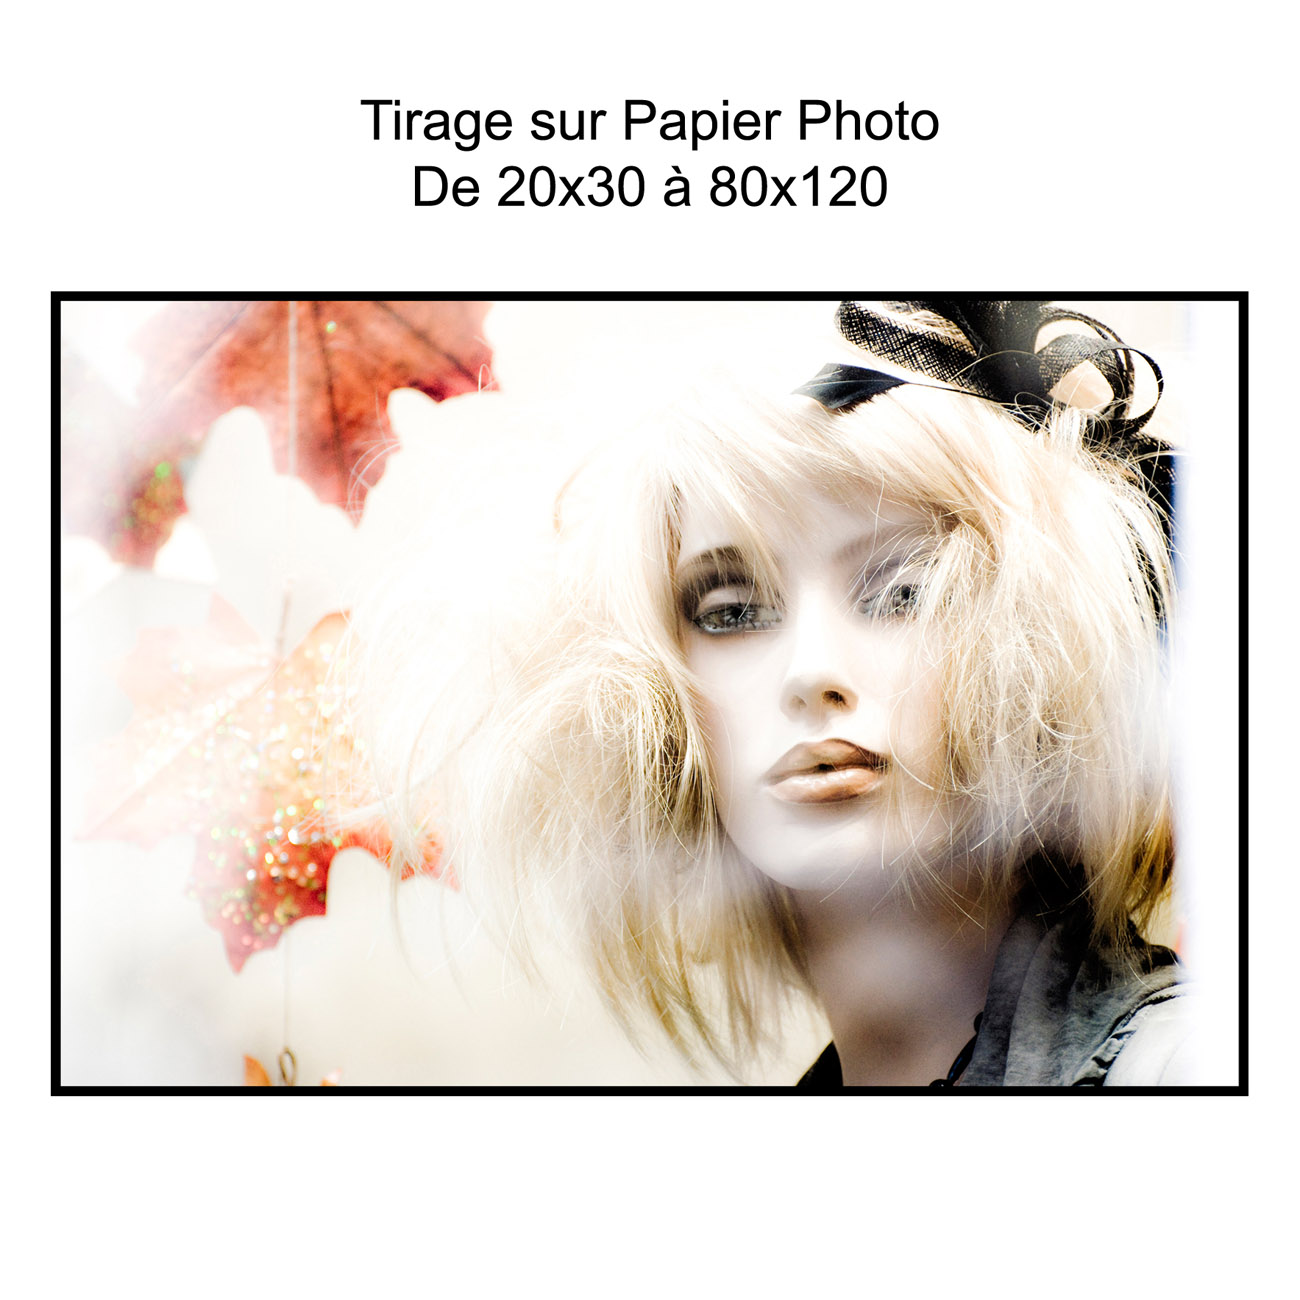 Tirage-sur-Papier-photo-carree